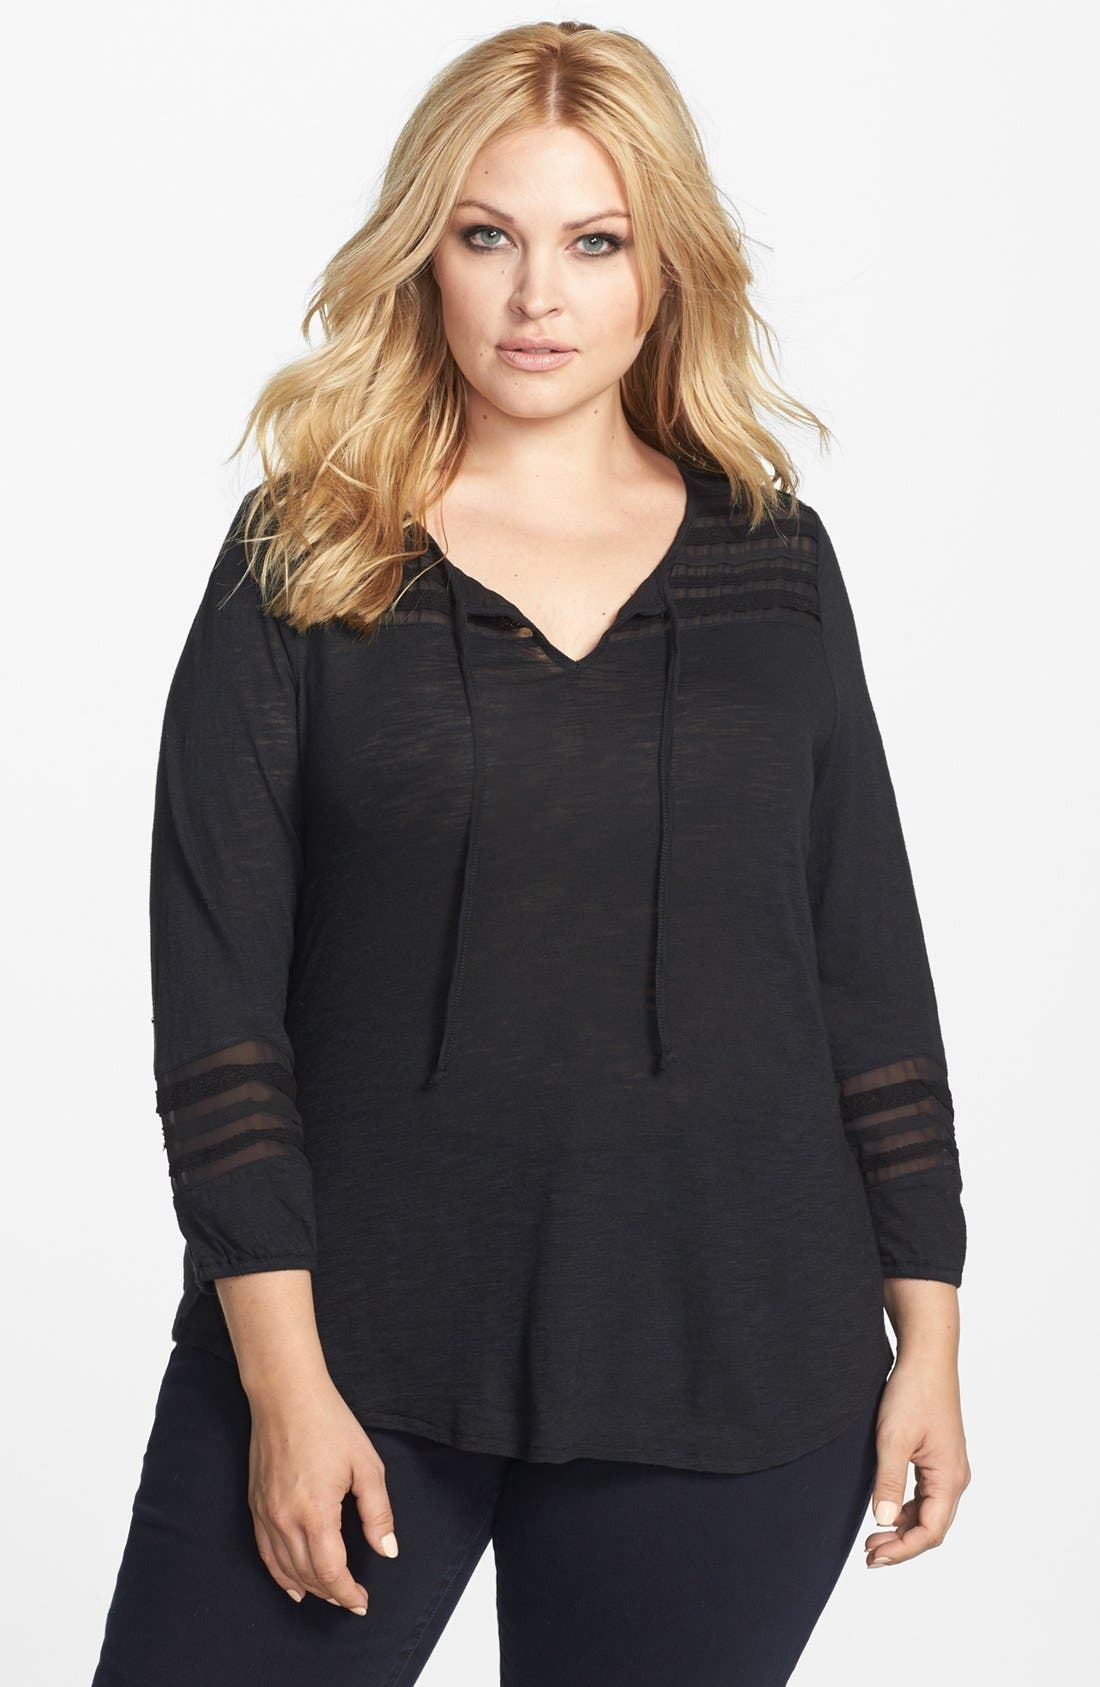 Alternate Image 1 Selected - Lucky Brand Lace & Mesh Inset Jersey Top (Plus Size)